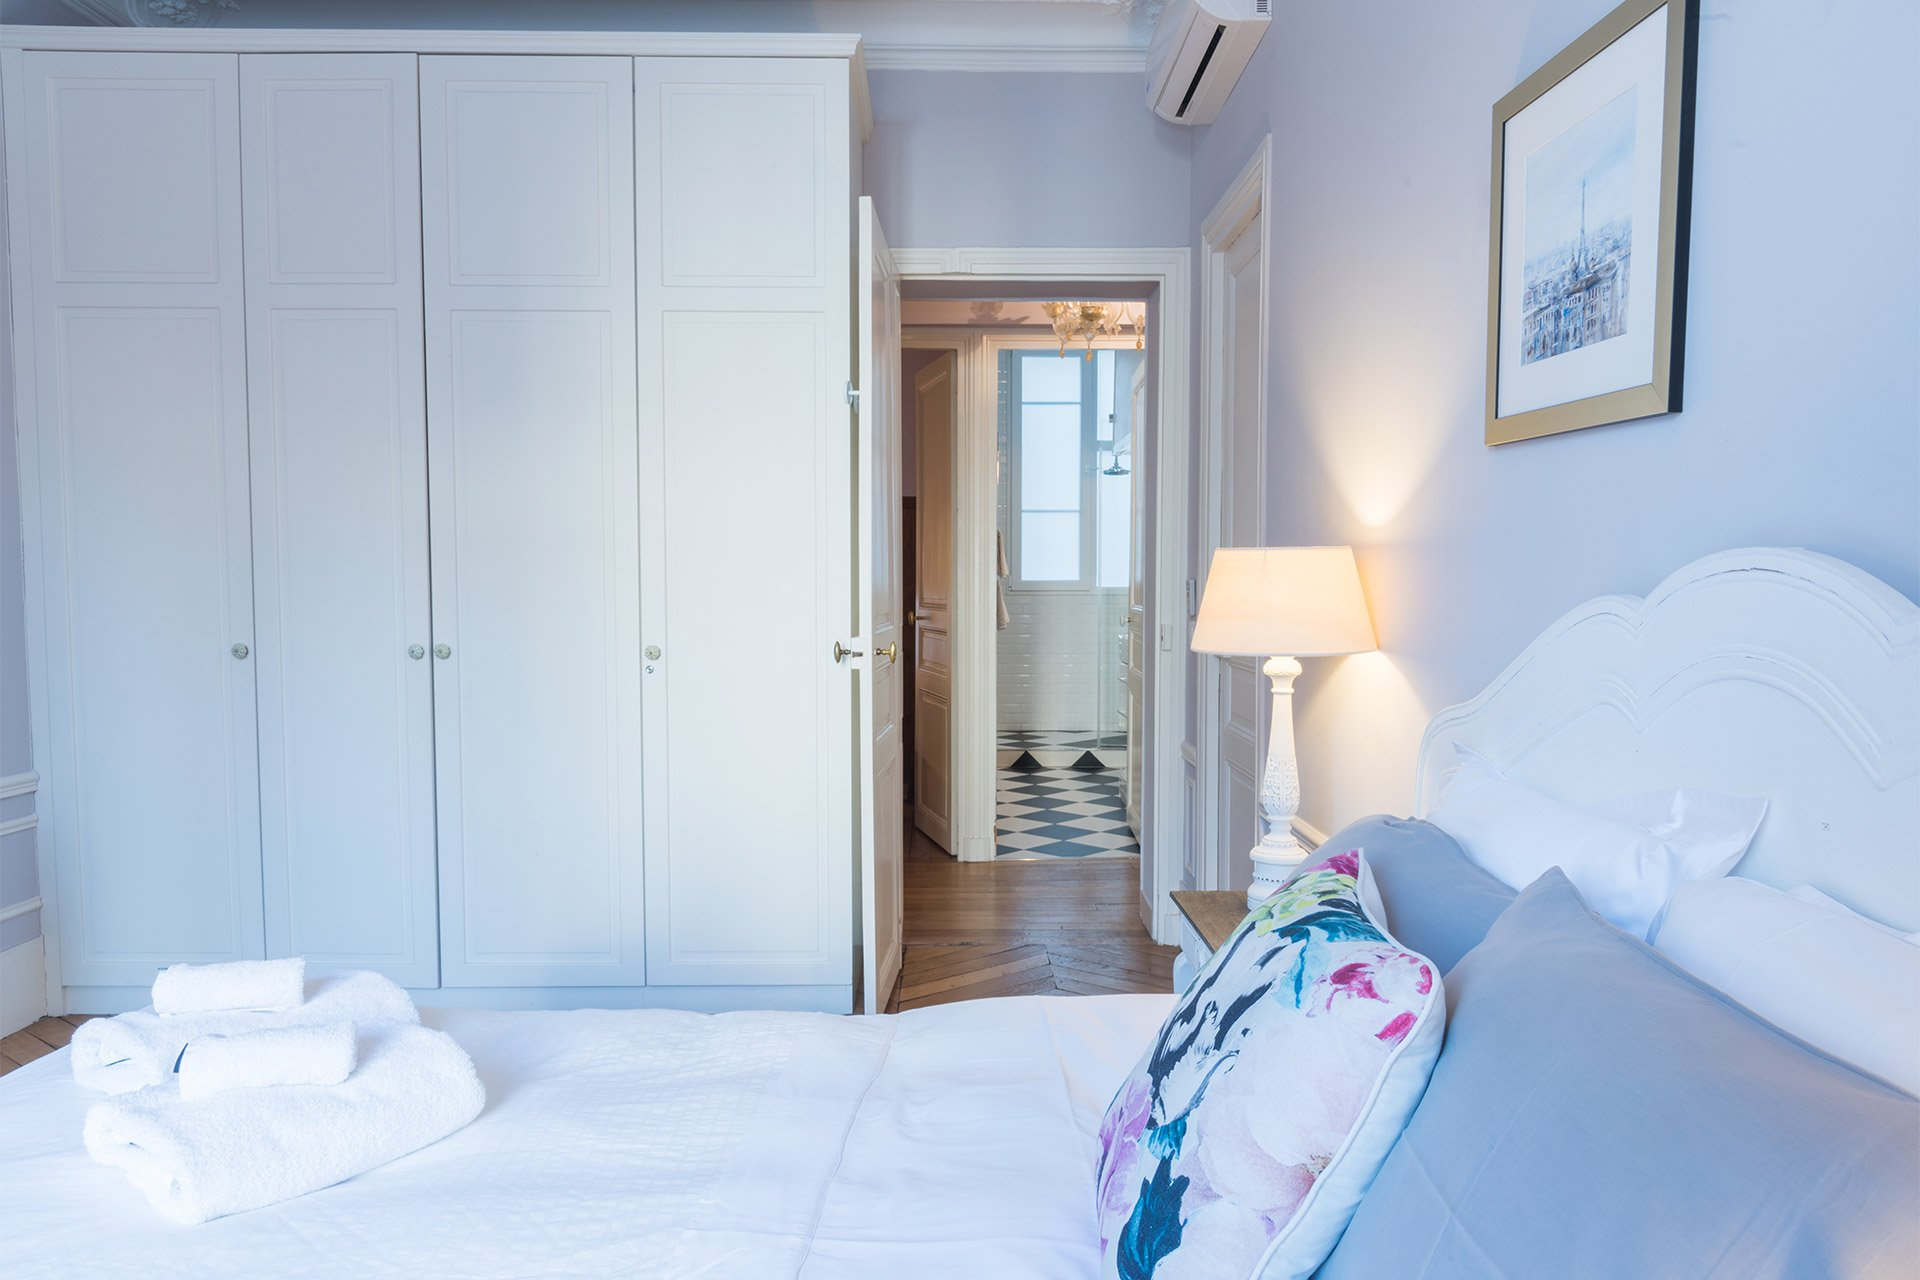 Plenty of closet space to store your belongings in the Maubert vacation rental offered by Paris Perfect